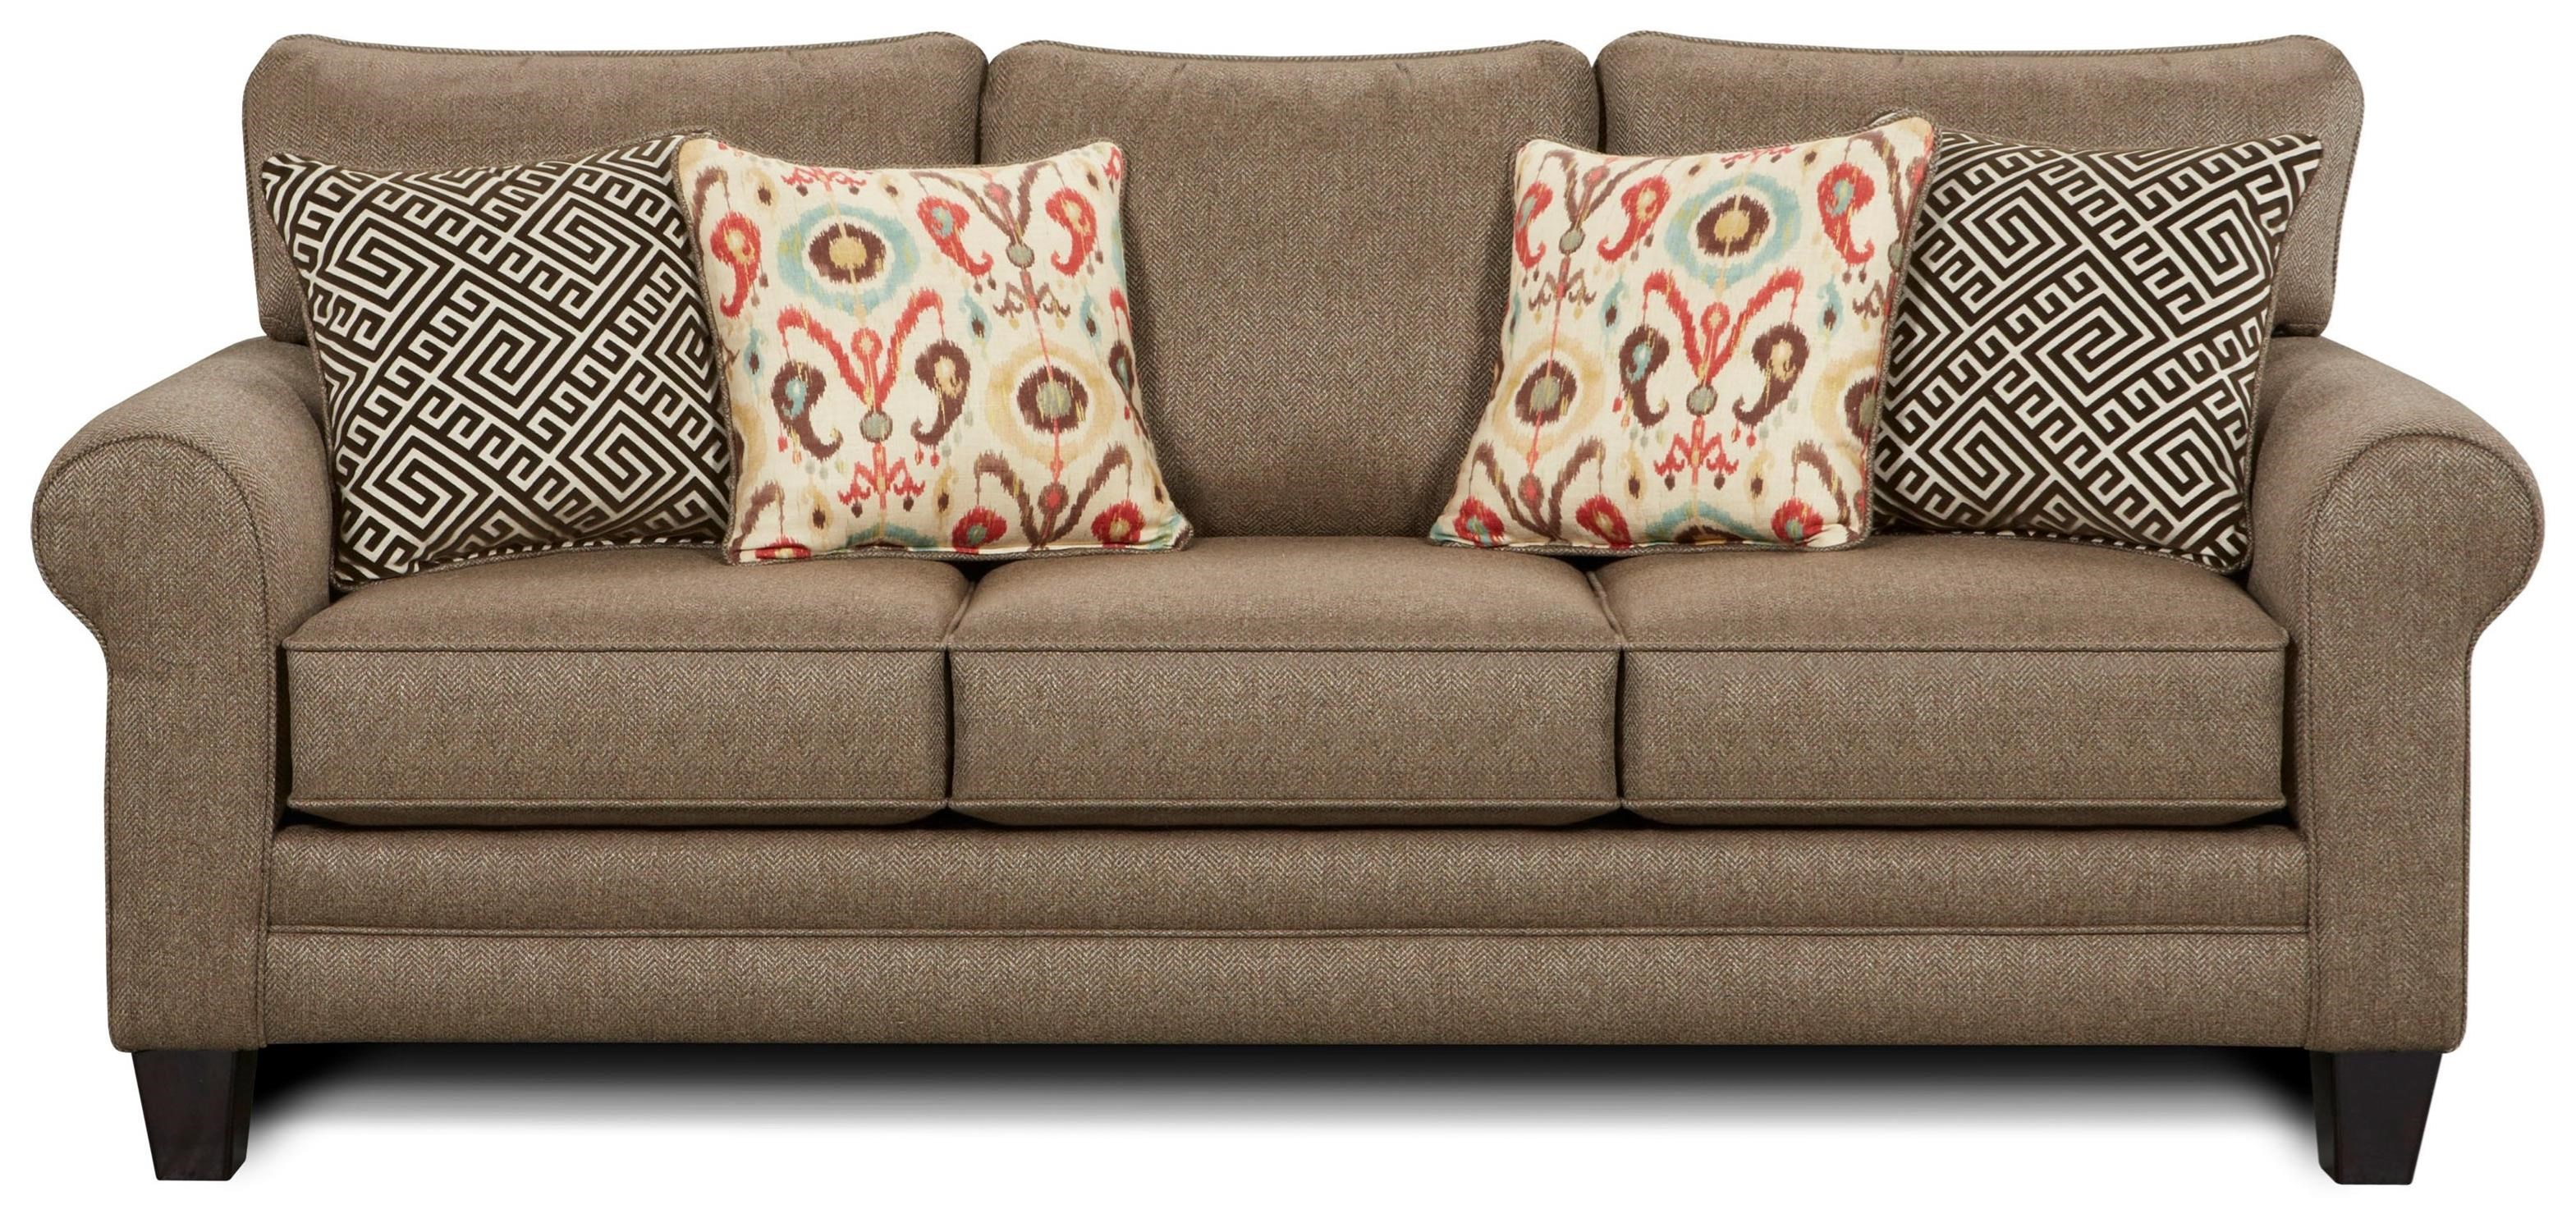 Fusion Furniture 1140 Sleeper Sofa - Item Number: 1144Romero Badger